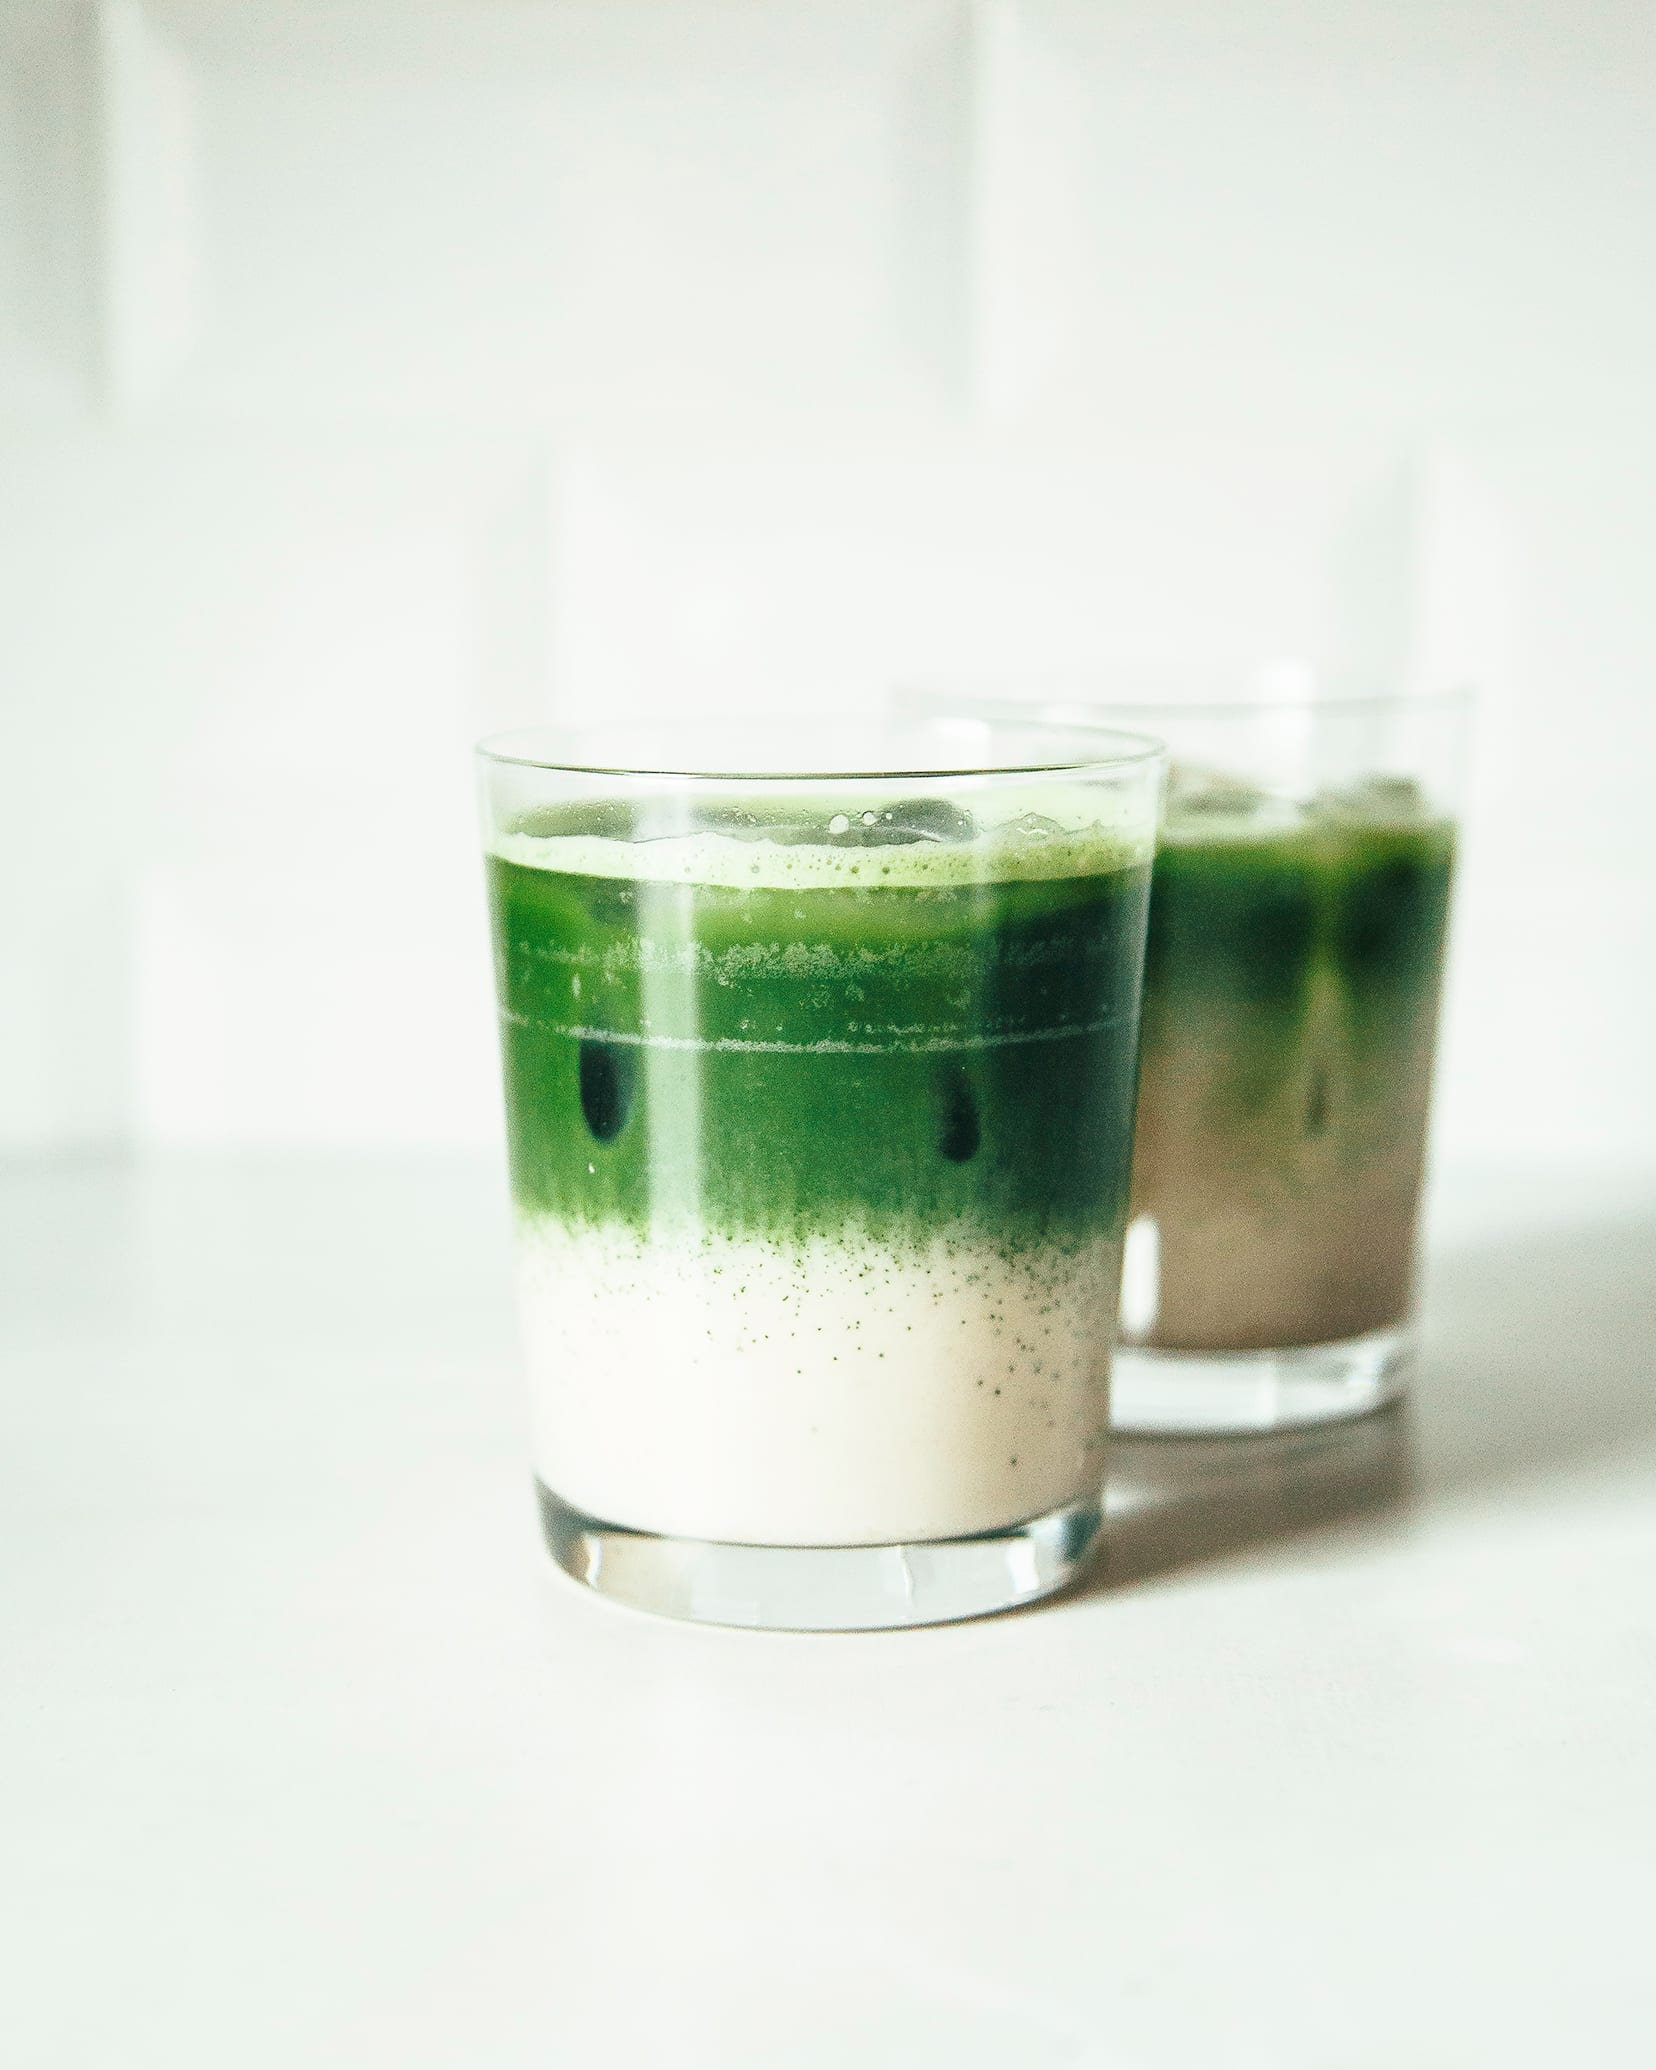 Image shows two glasses with a two-toned beverage against a white background. The bottom half of the beverage is creamy white and the top is bright green.